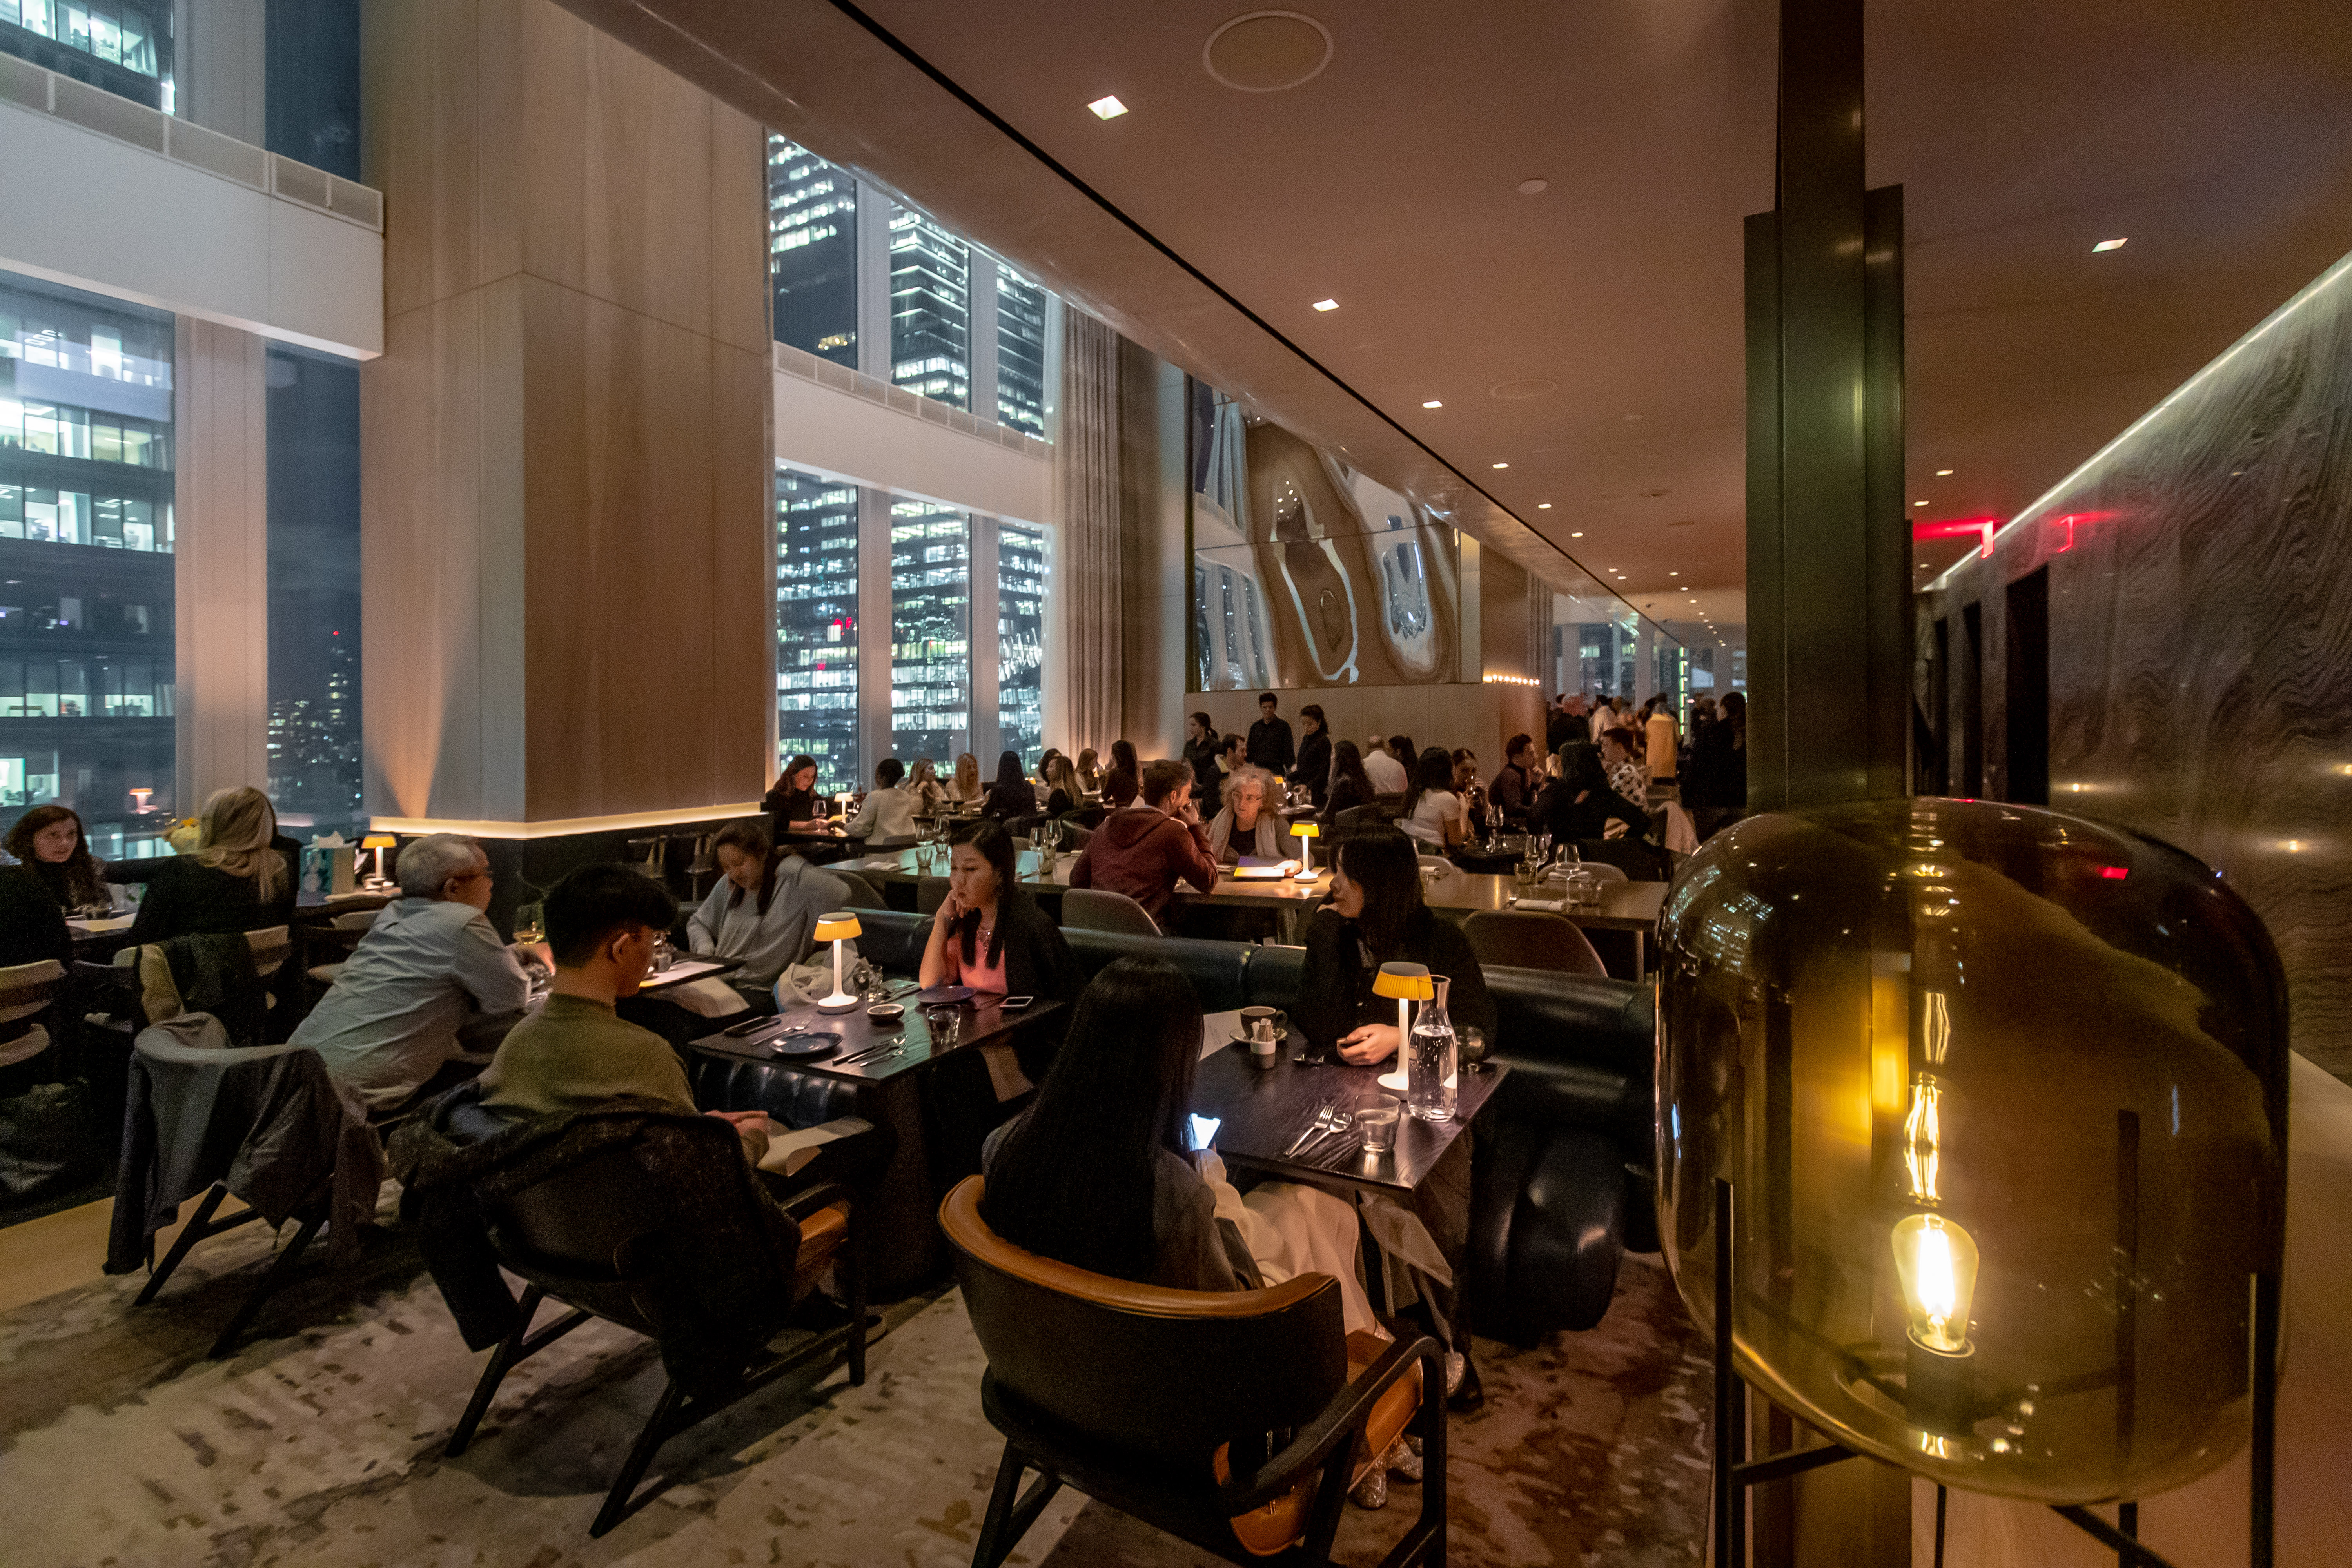 Patrons dine at tables at the Electric Lemon dining room, whose windows overlook Hudson Yards